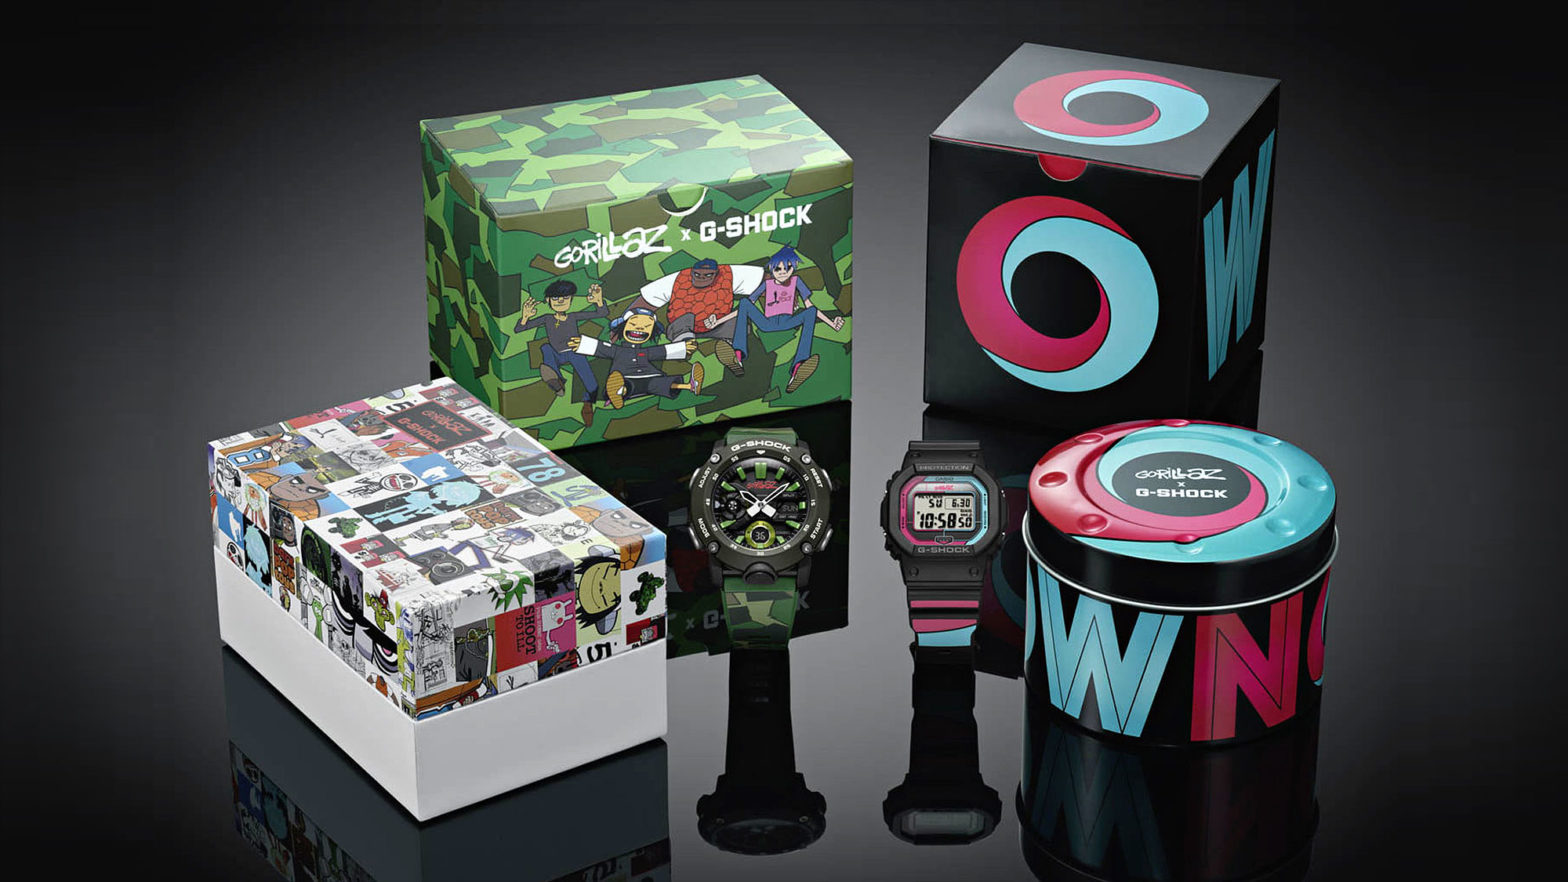 CASIO G-Shock x Gorillaz Watches